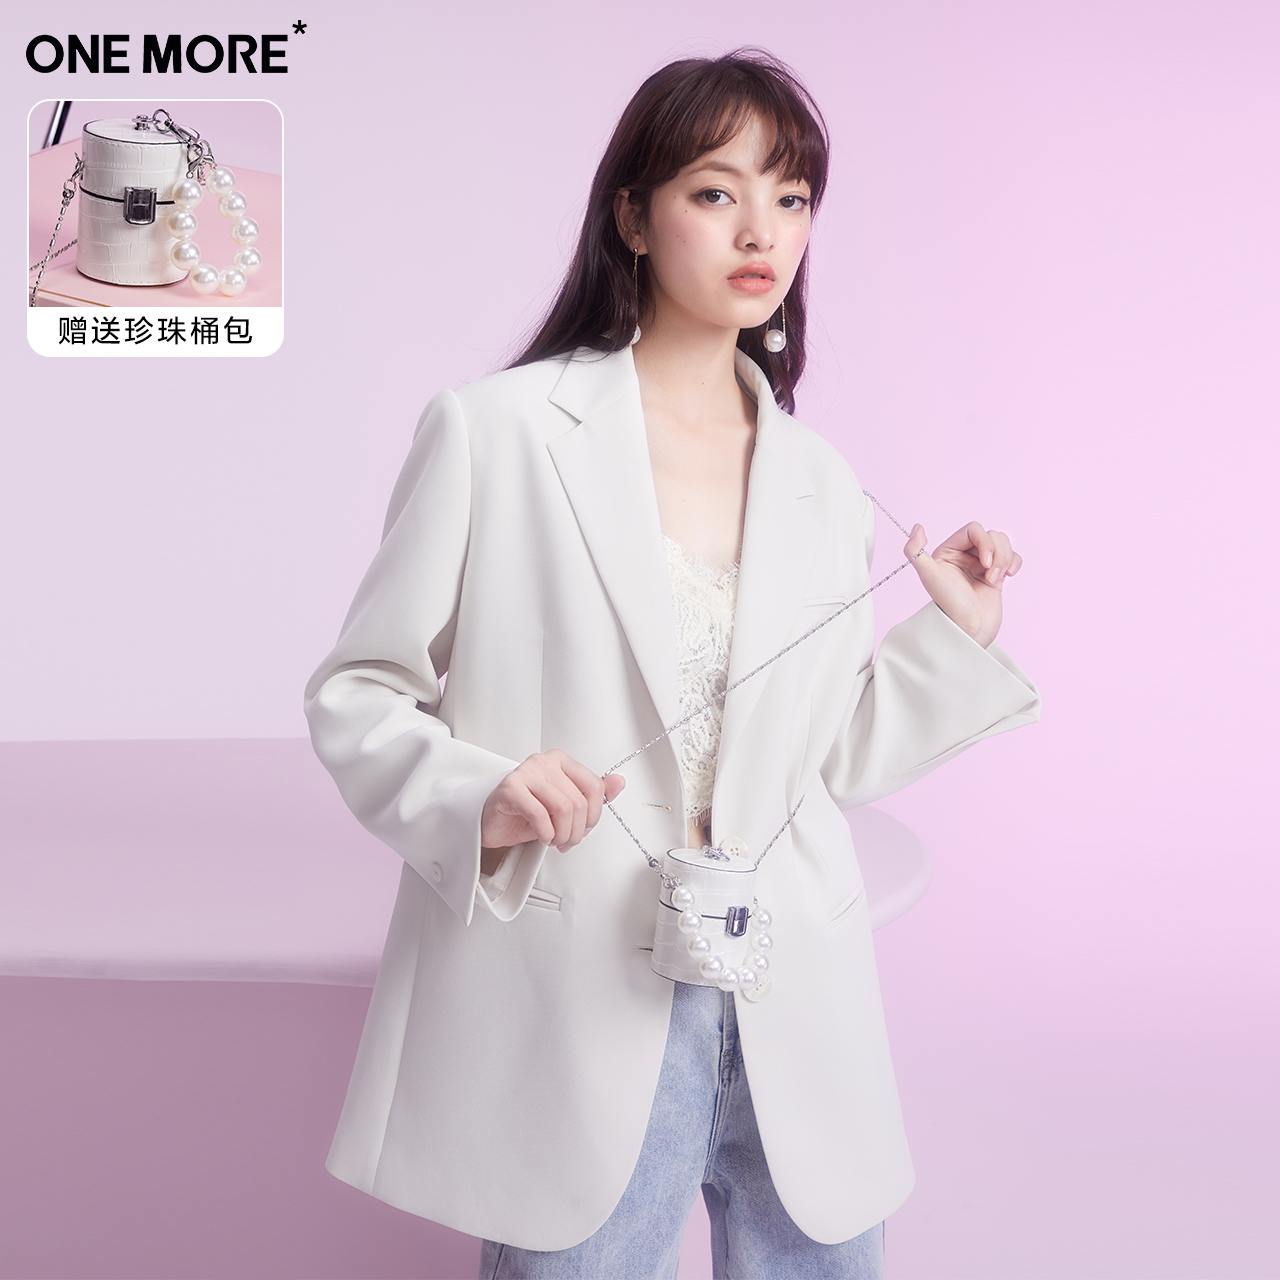 ONE MORE2021 Spring new white temperament small suit loose Korean version fashion suit suit coat woman